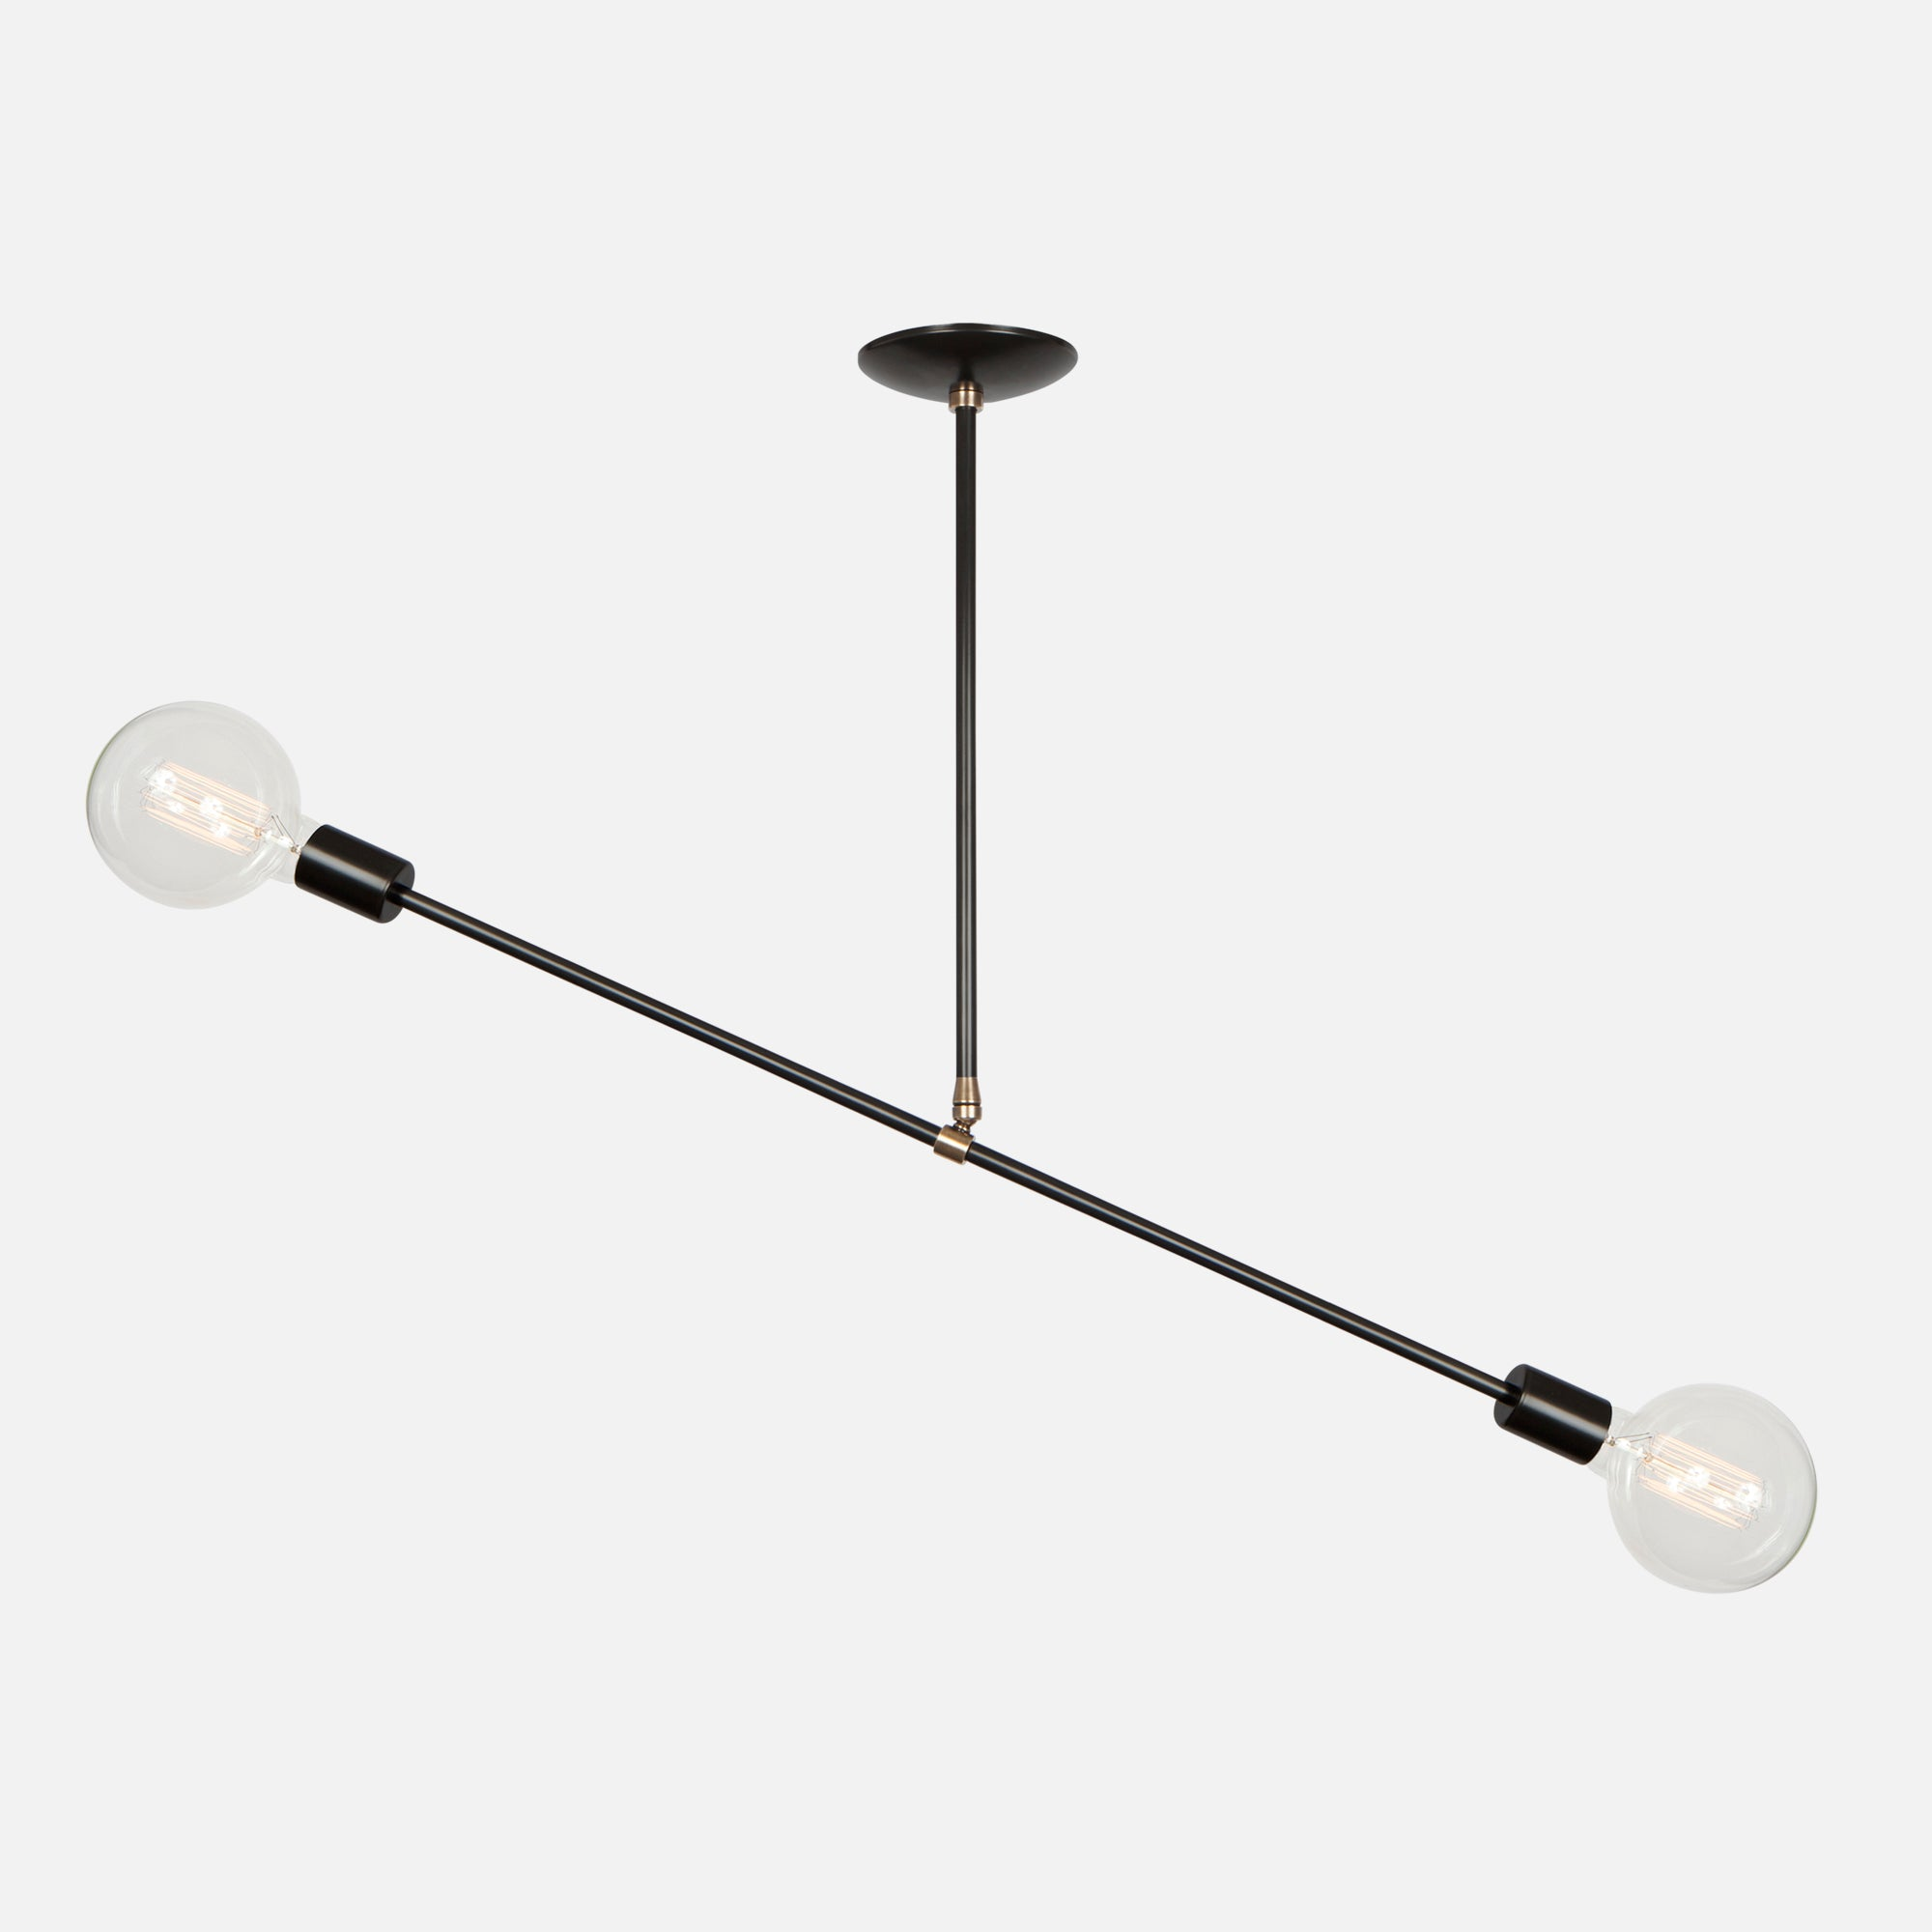 Balance Pendant Light - Angle 1 - Matte Black with Aged Brass